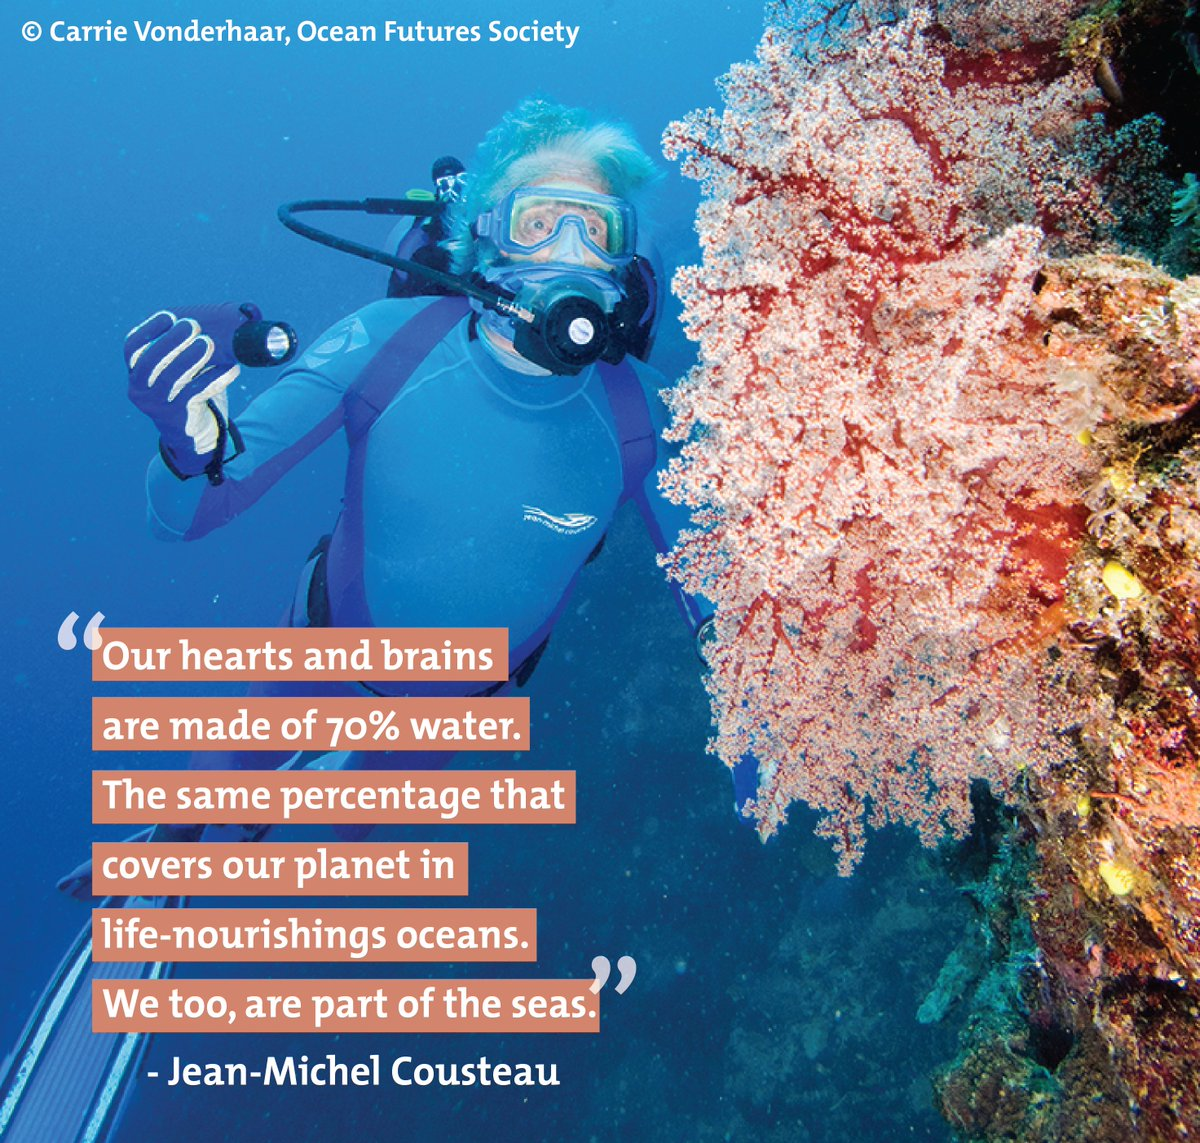 """Let us not forget that we are mostly #water. It is time to embrace our water planet as part of us."" @JMCousteau https://t.co/DxVZEt3PEb"